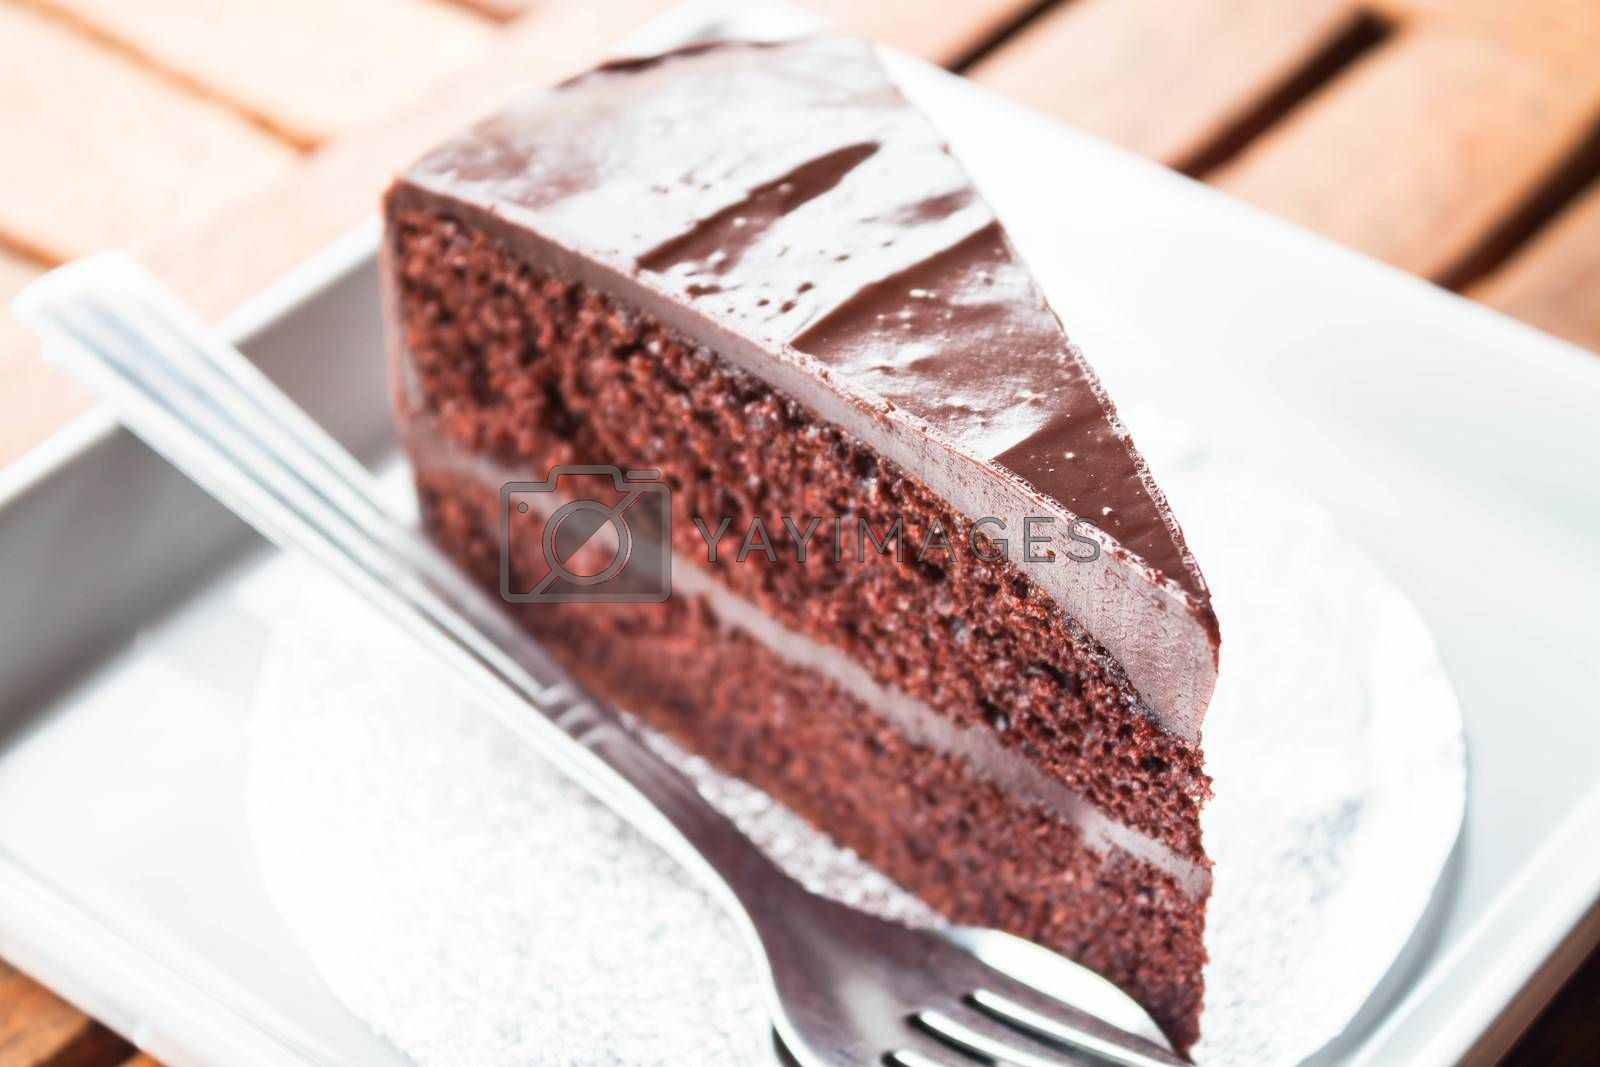 Chocolate cake serving on white plate with spoon and fork